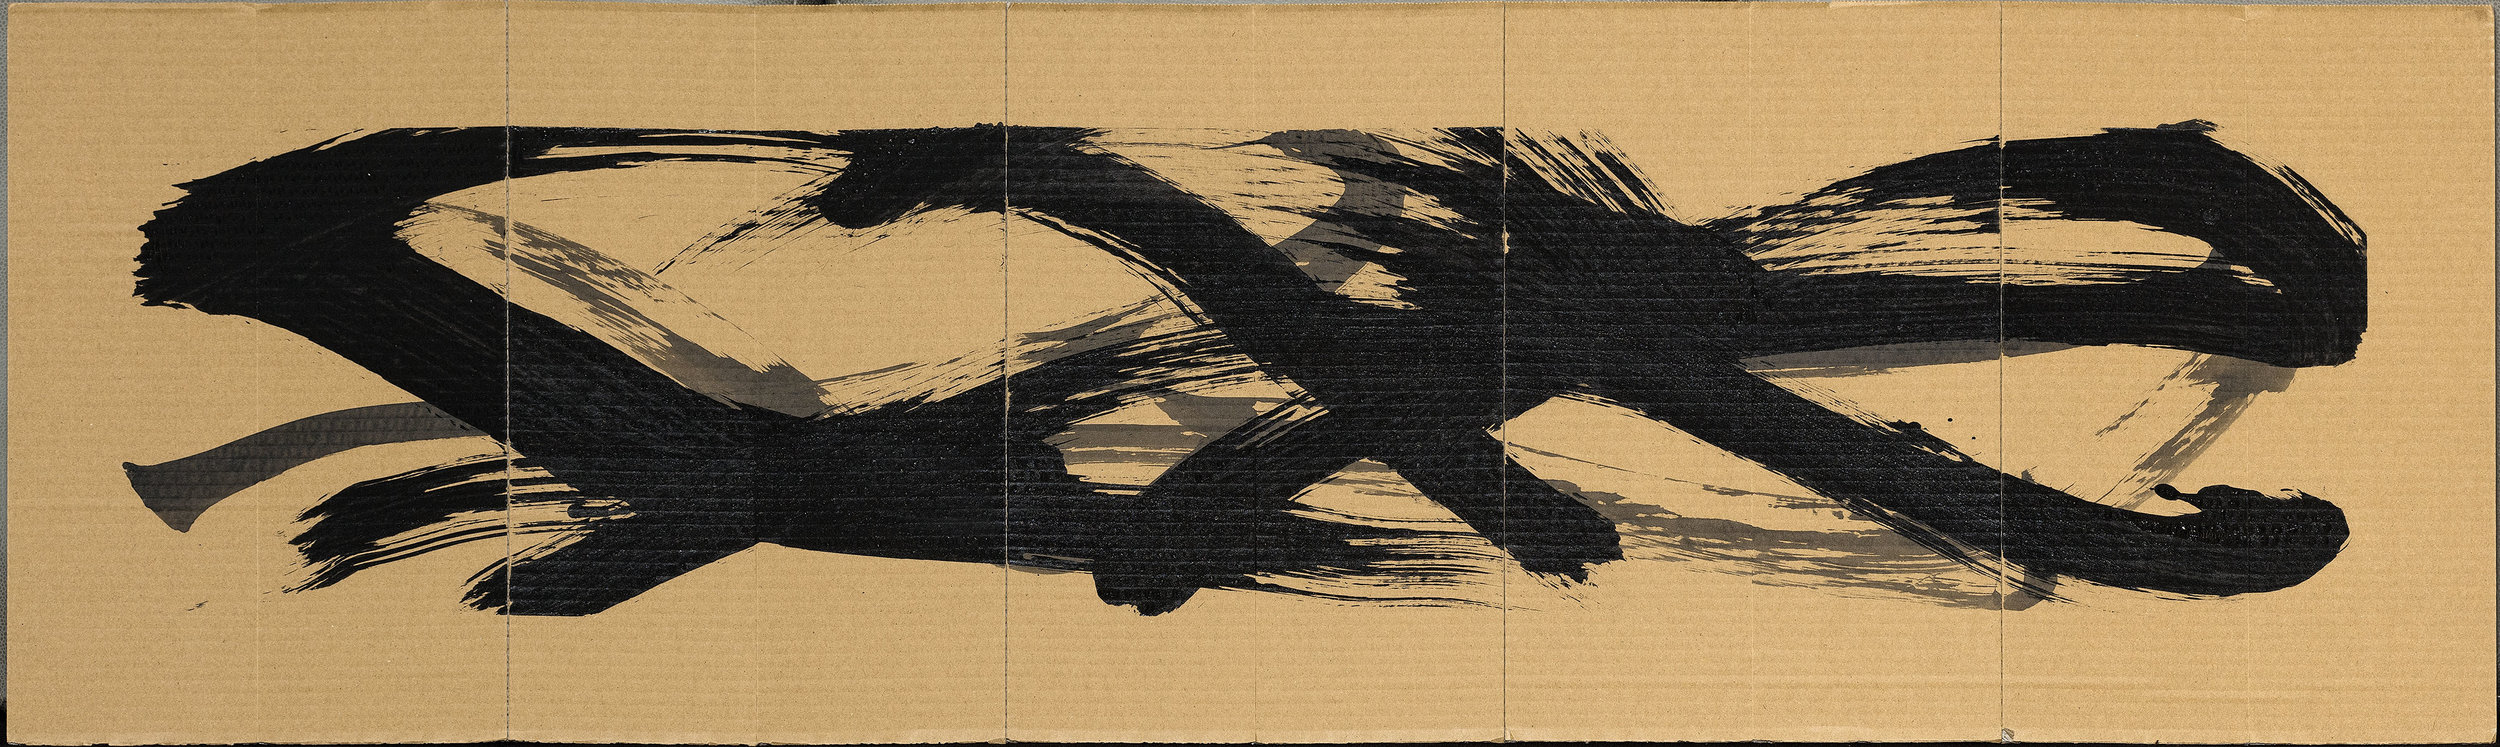 "Siren Song (verso)  2016  ink on folding corrugated cardboard  19"" x 72"""